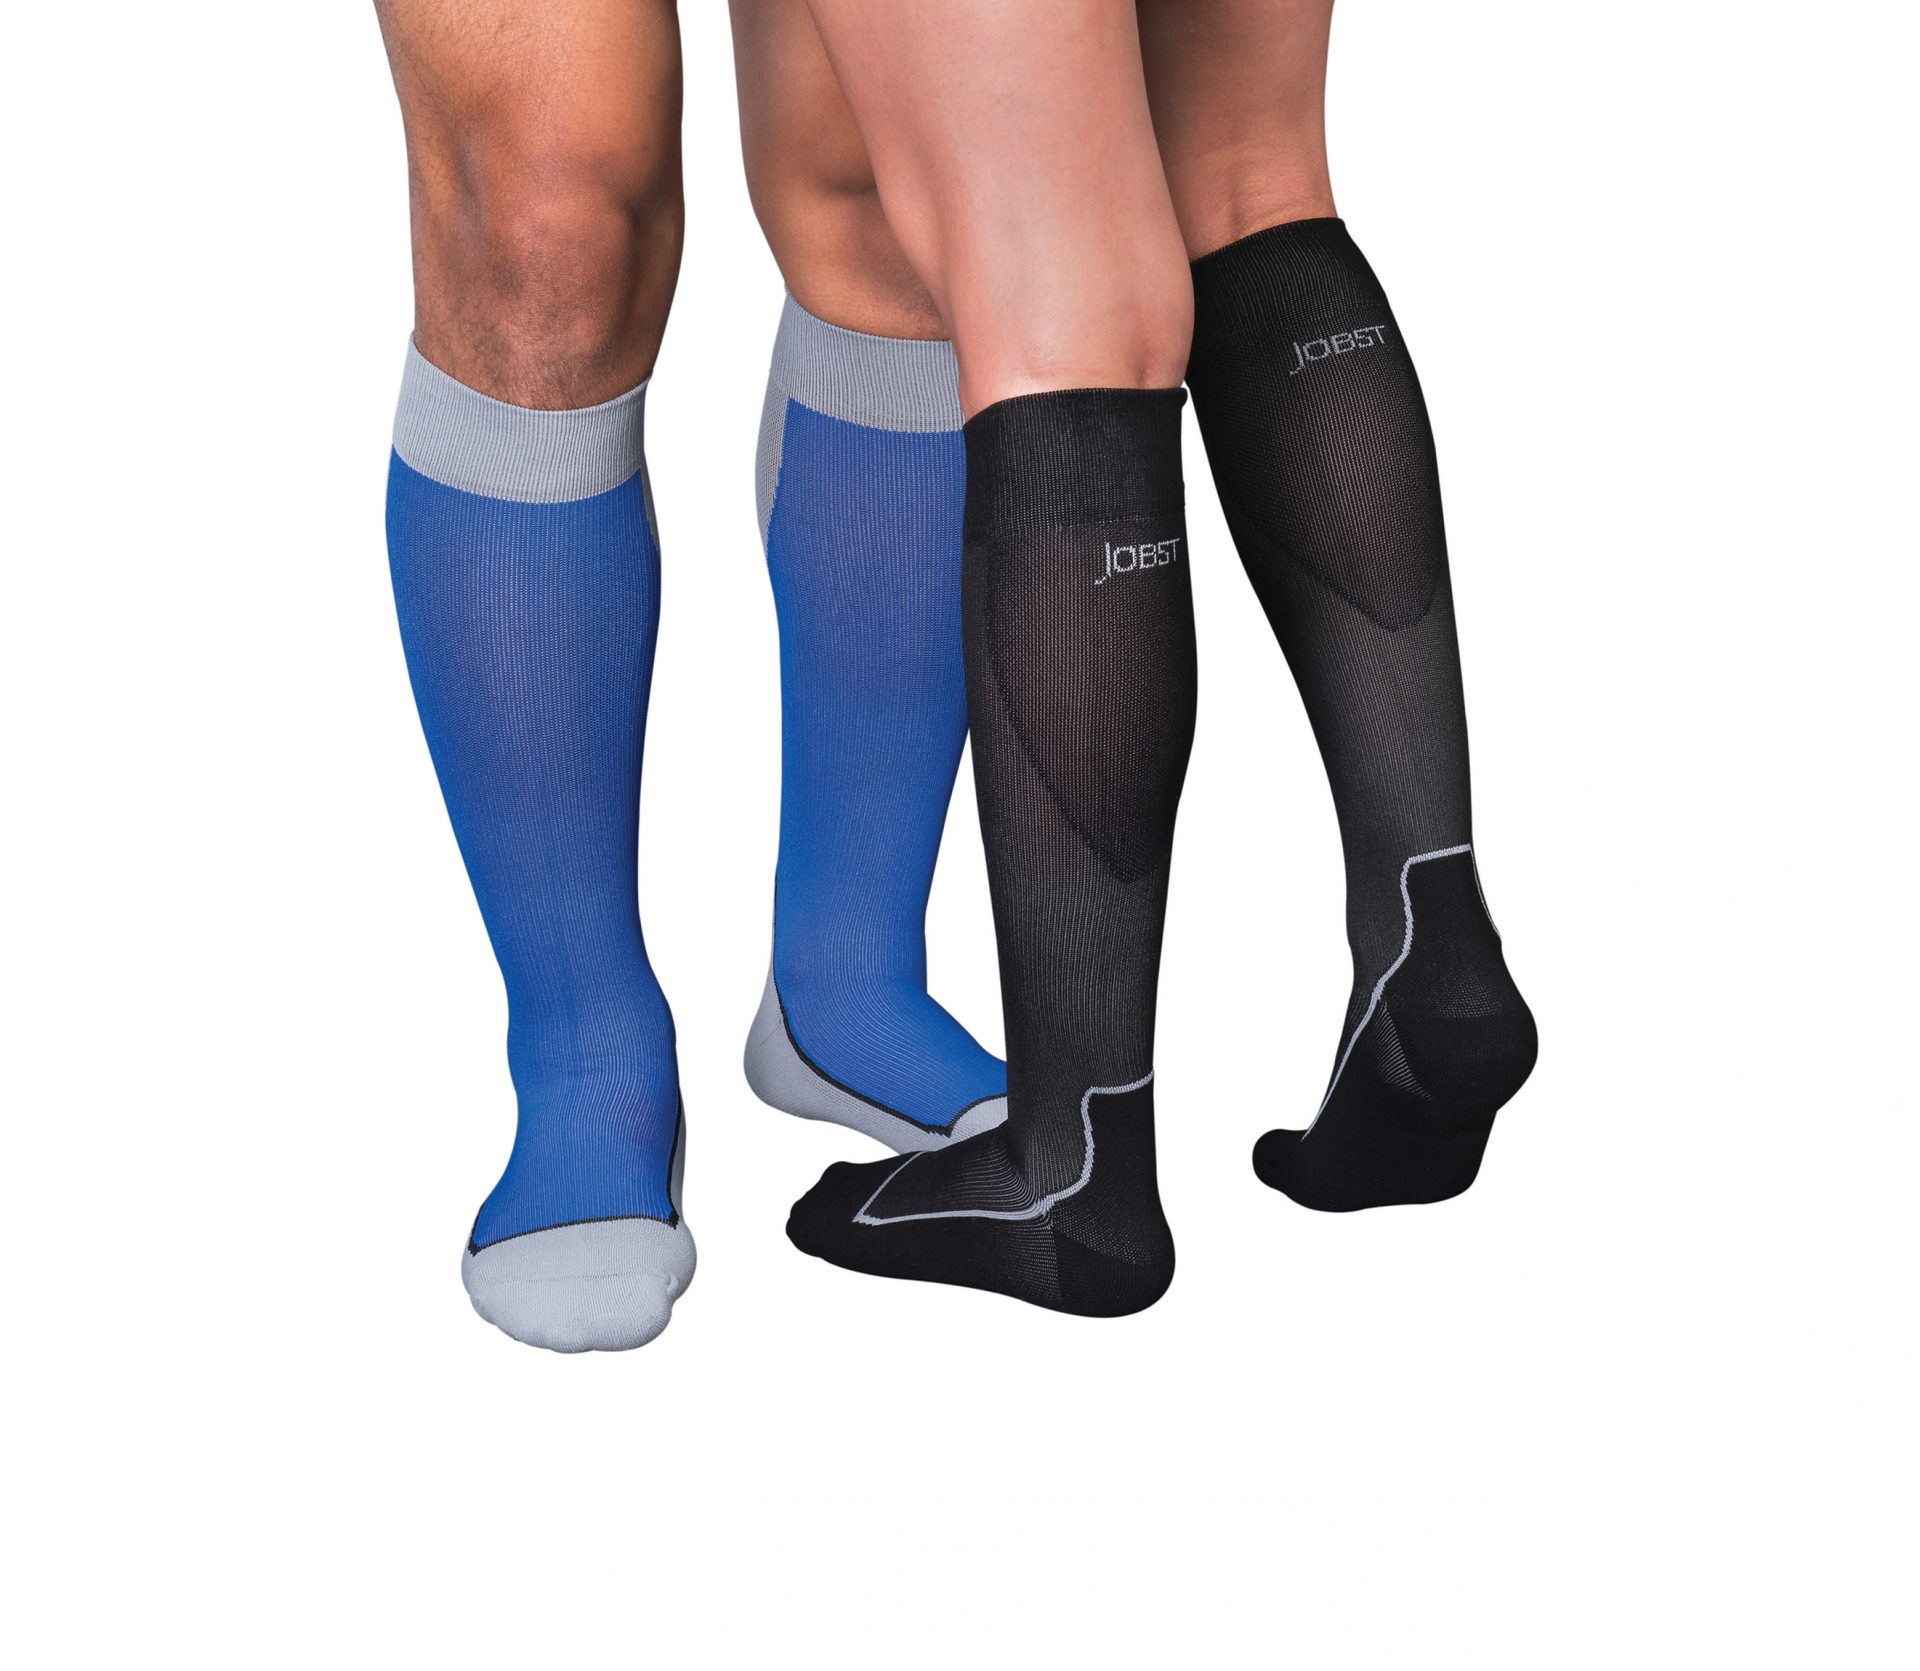 261067474 Two leg models wearing Jobst compression sport socks. The left legs belong  to a male